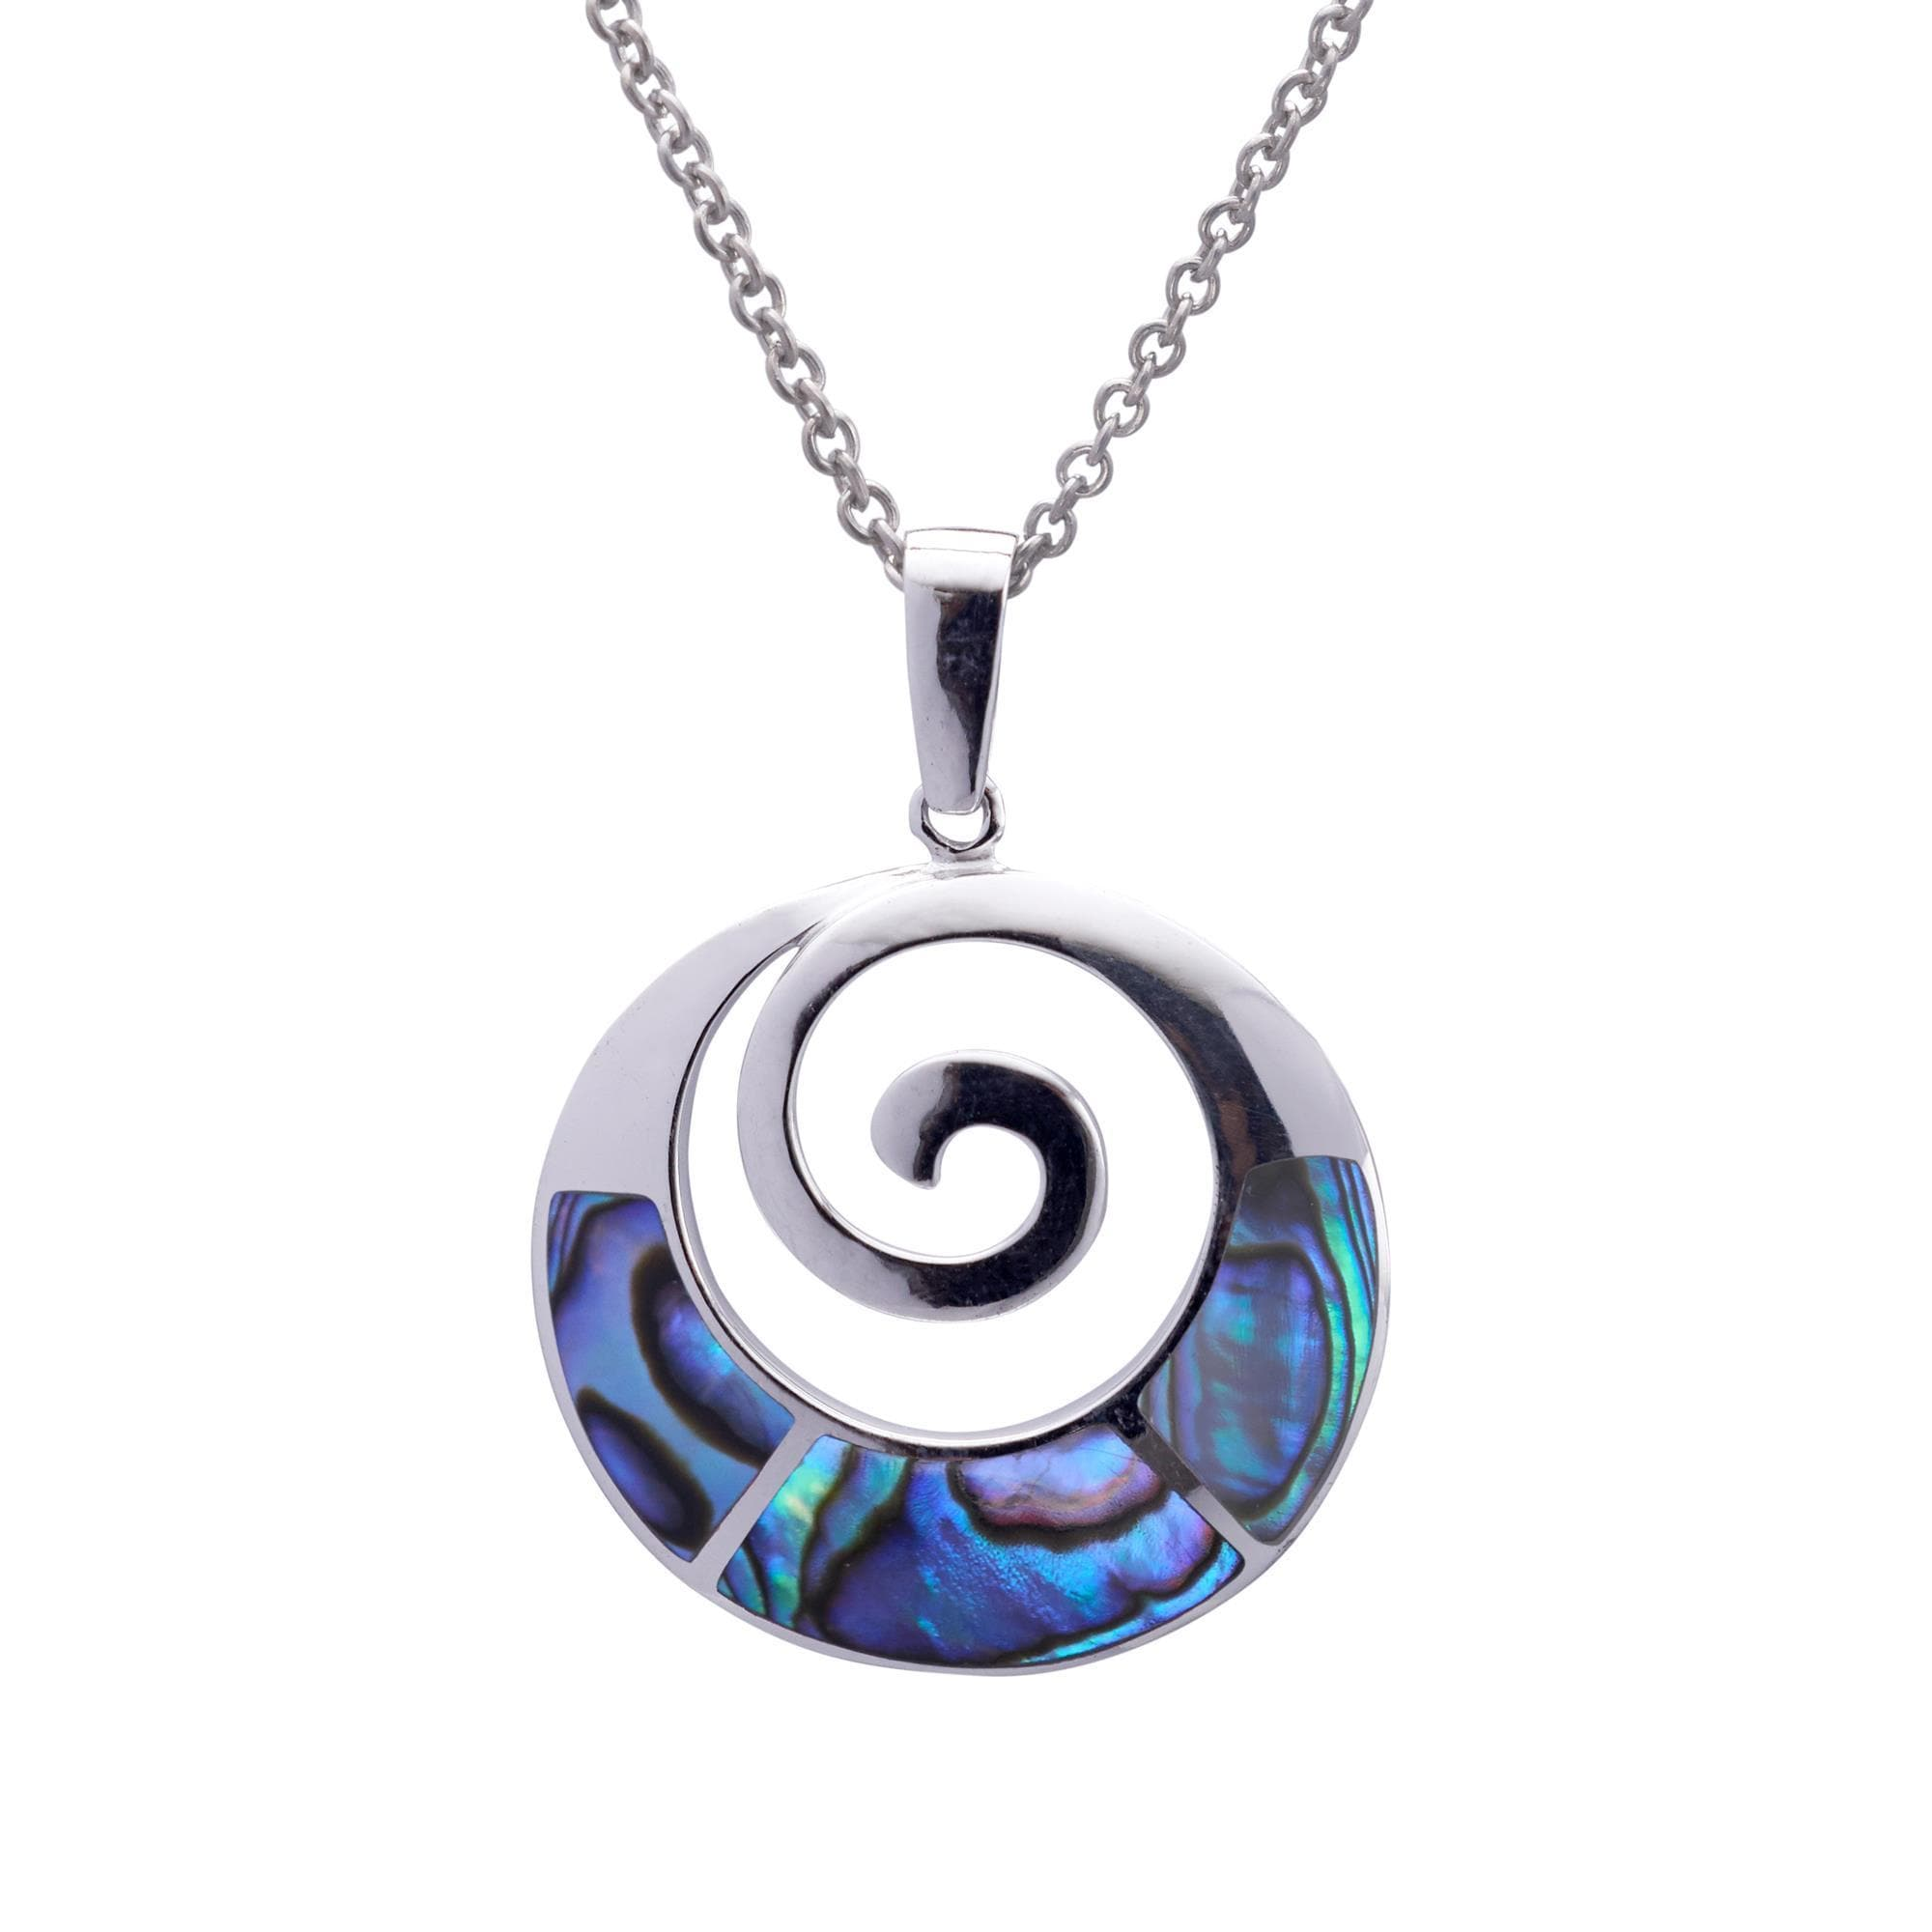 bail bead spiral stone product stnpnd sterling w pendant metaphysical nebula with